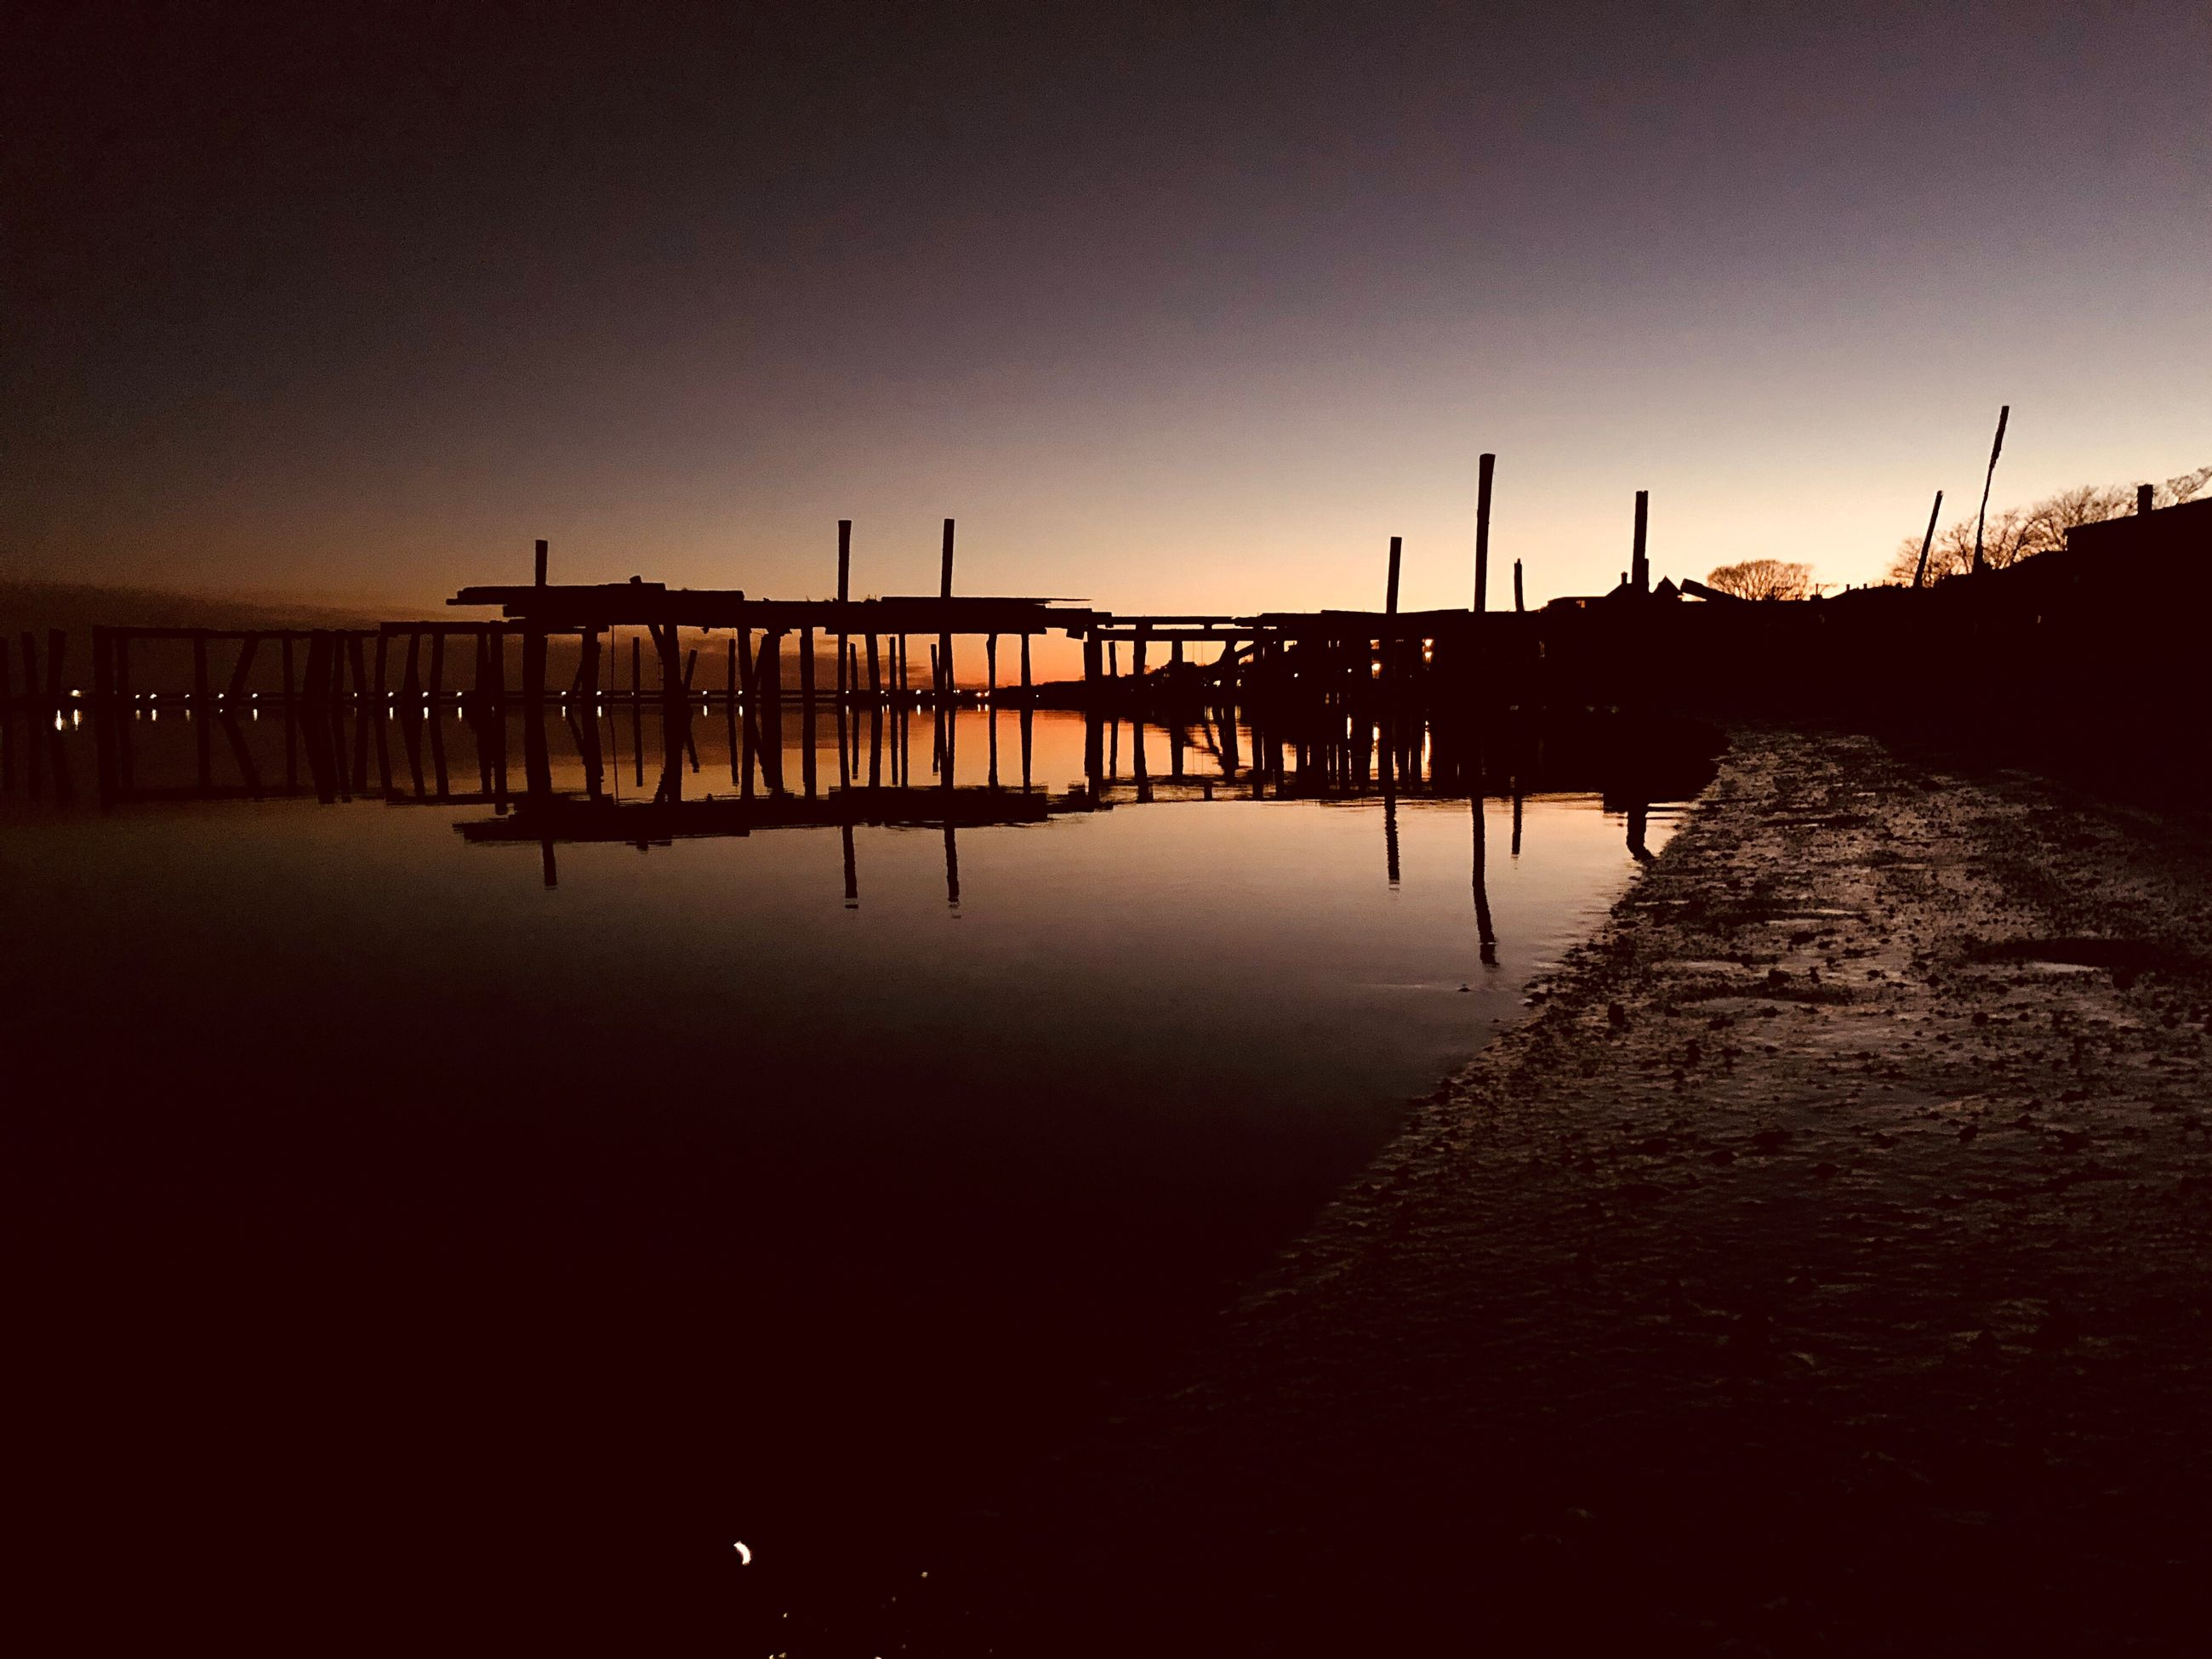 sunset, silhouette, water, reflection, sky, outdoors, tranquility, dusk, tranquil scene, built structure, waterfront, no people, river, scenics, clear sky, architecture, nature, beauty in nature, building exterior, city, day